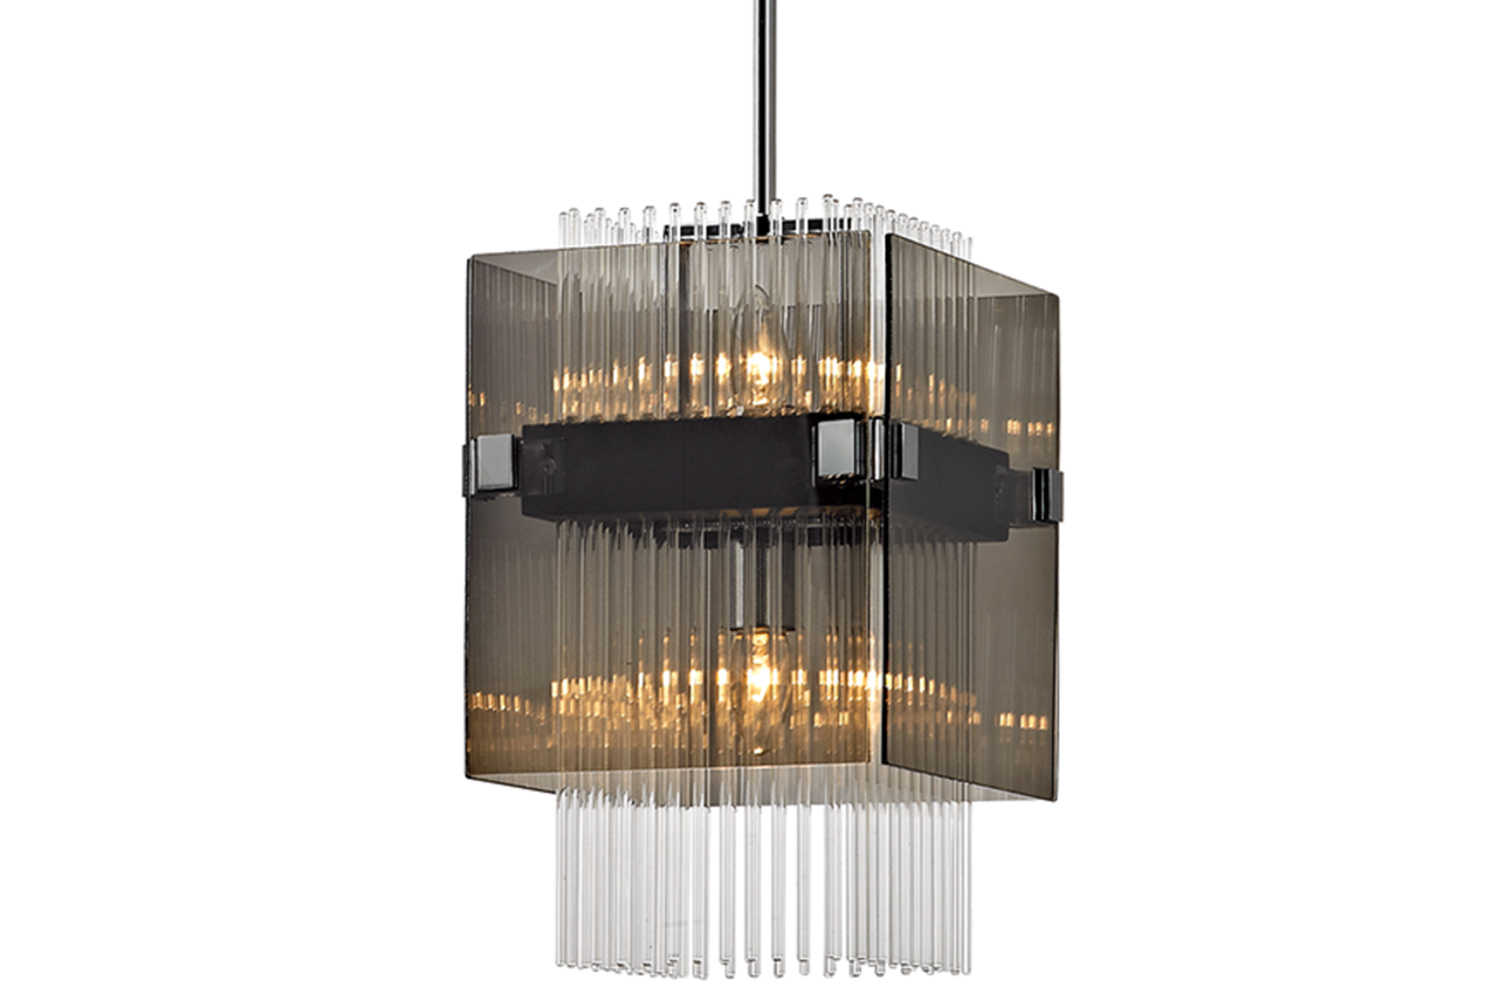 Apollo uses layers of plated smoked glass and rows of solid glass rods that refract light.